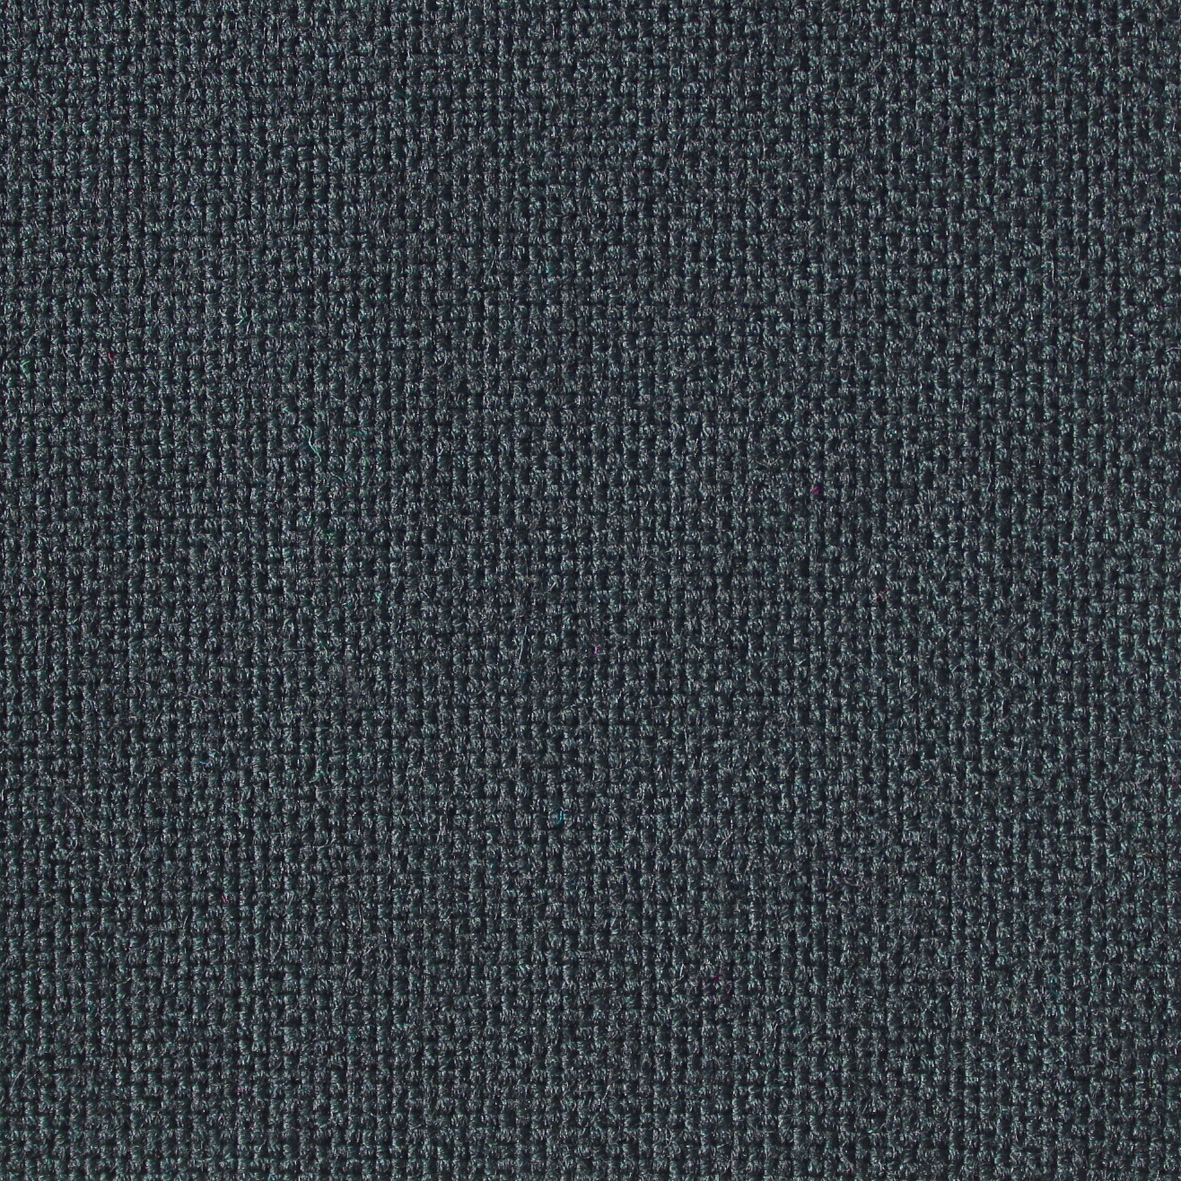 New Contract / Workplace fabric—Terrain